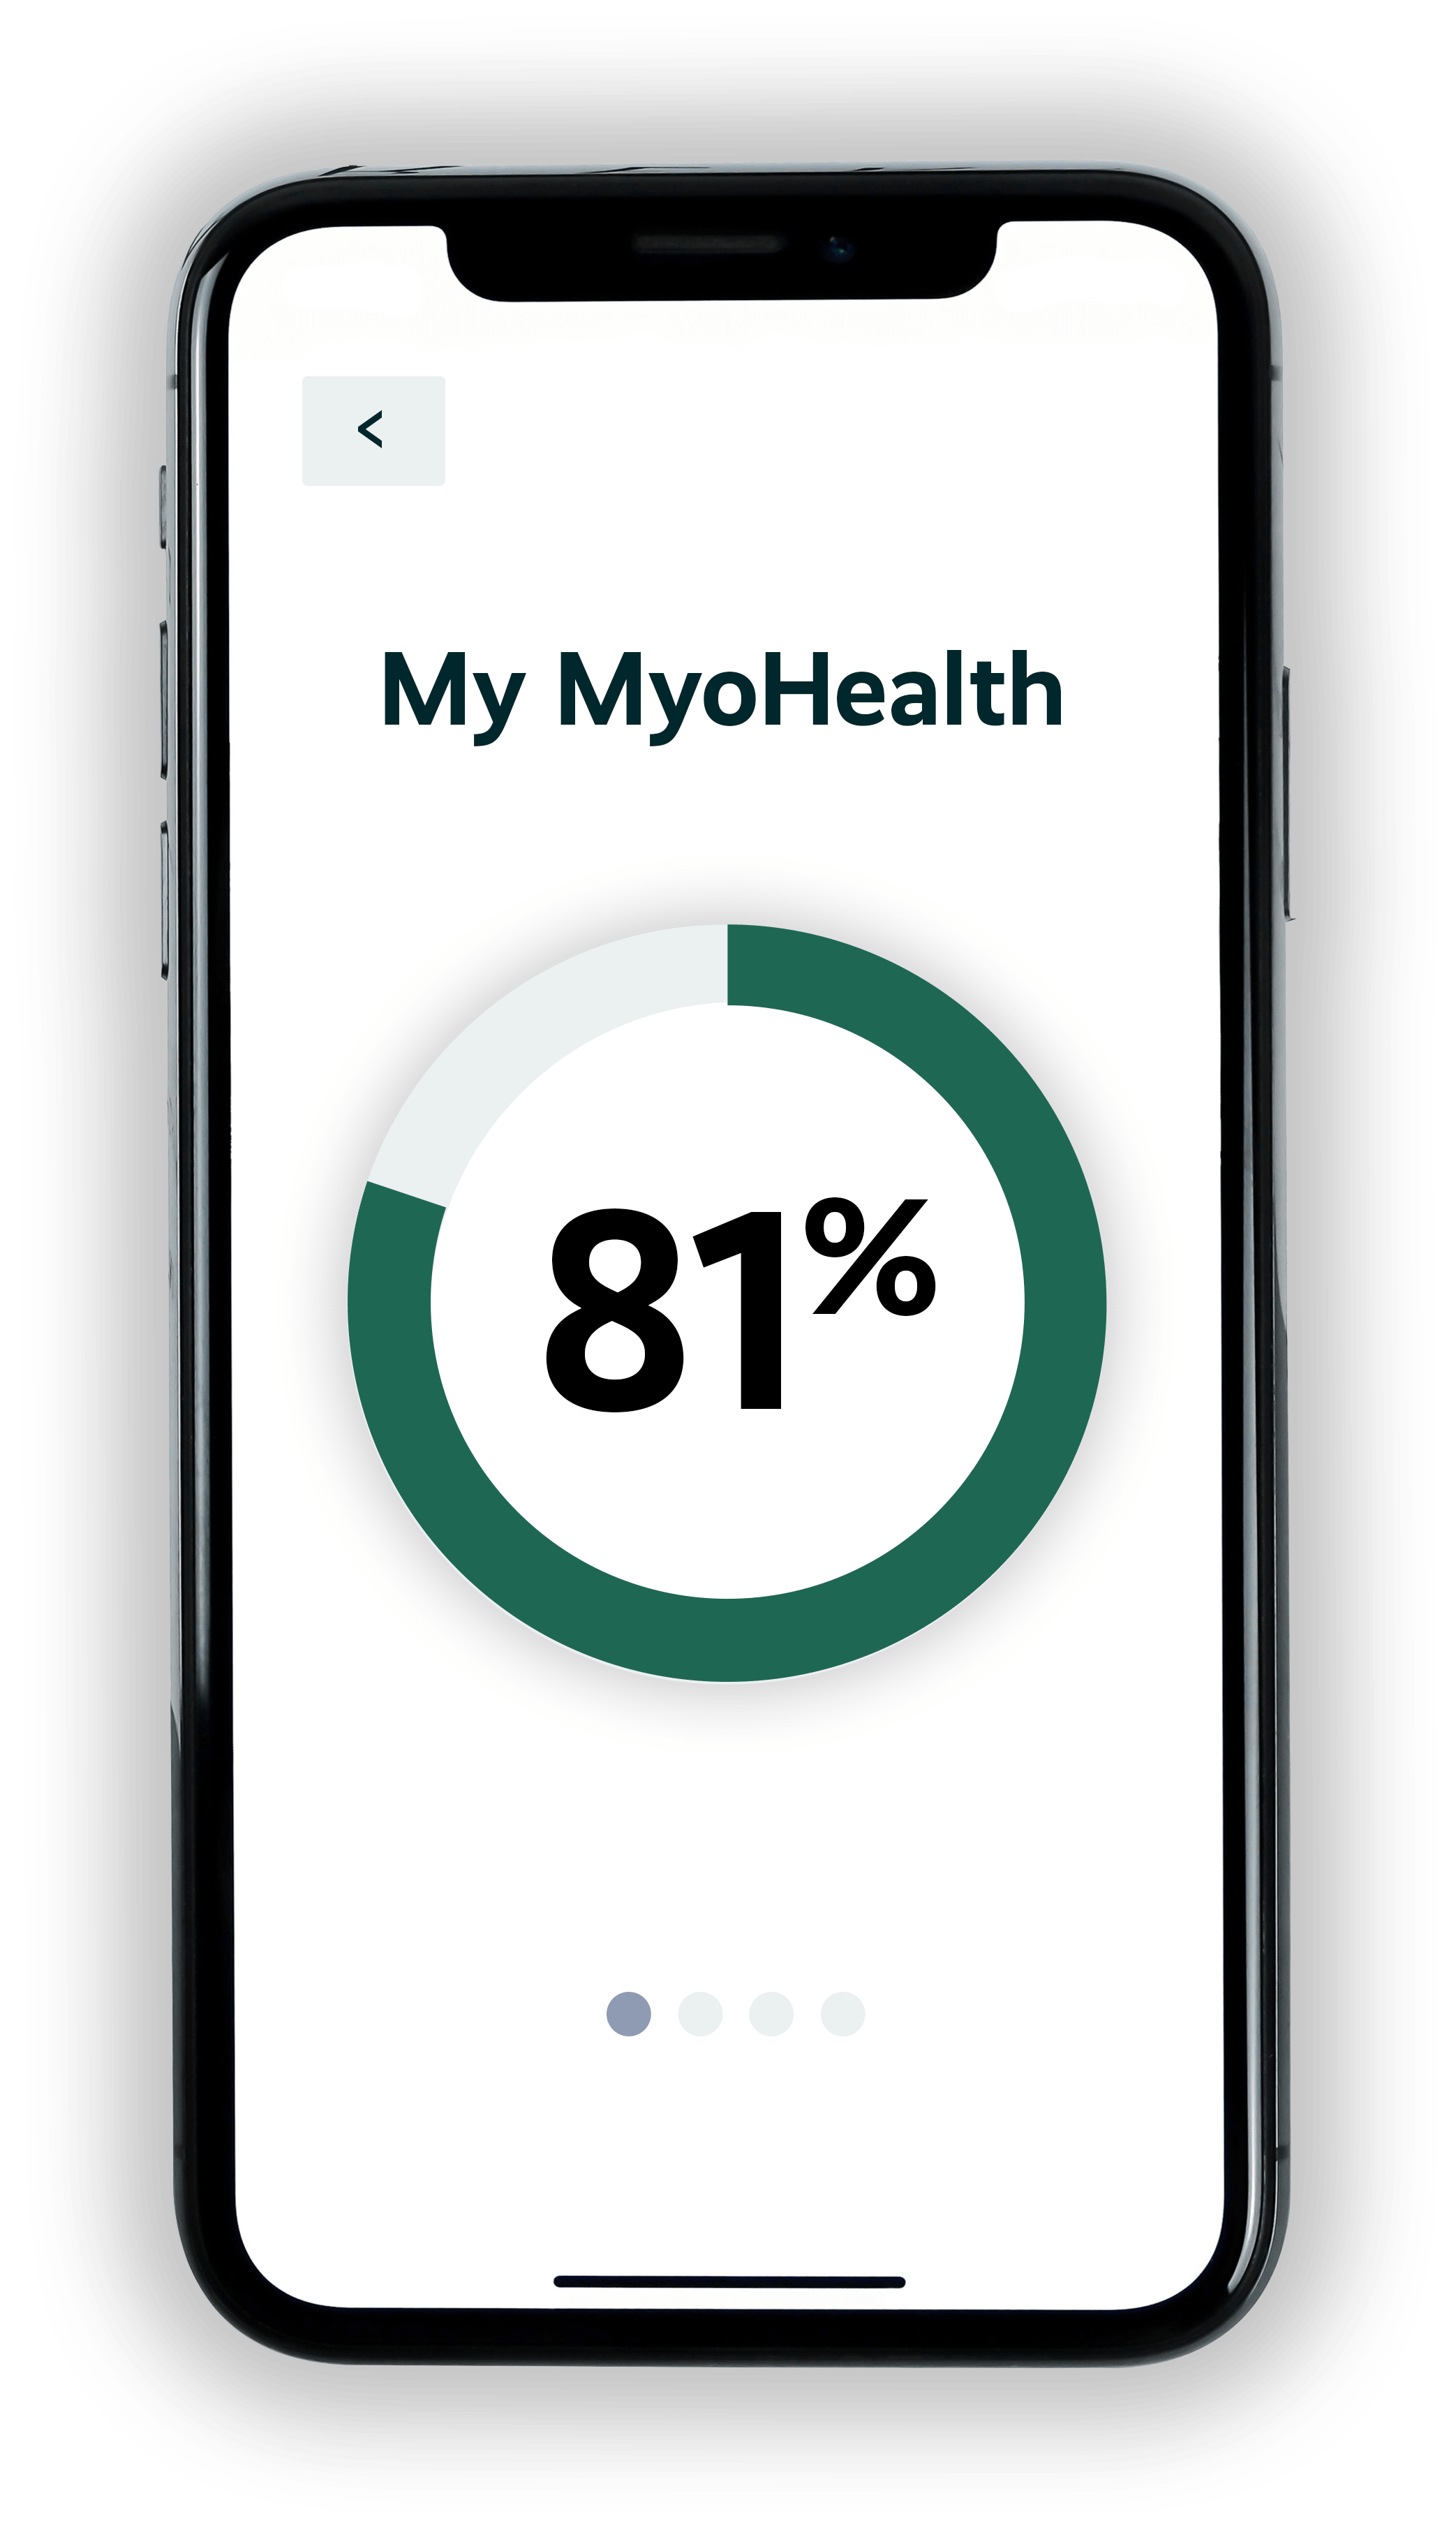 myohealth patient score on mobile phone app